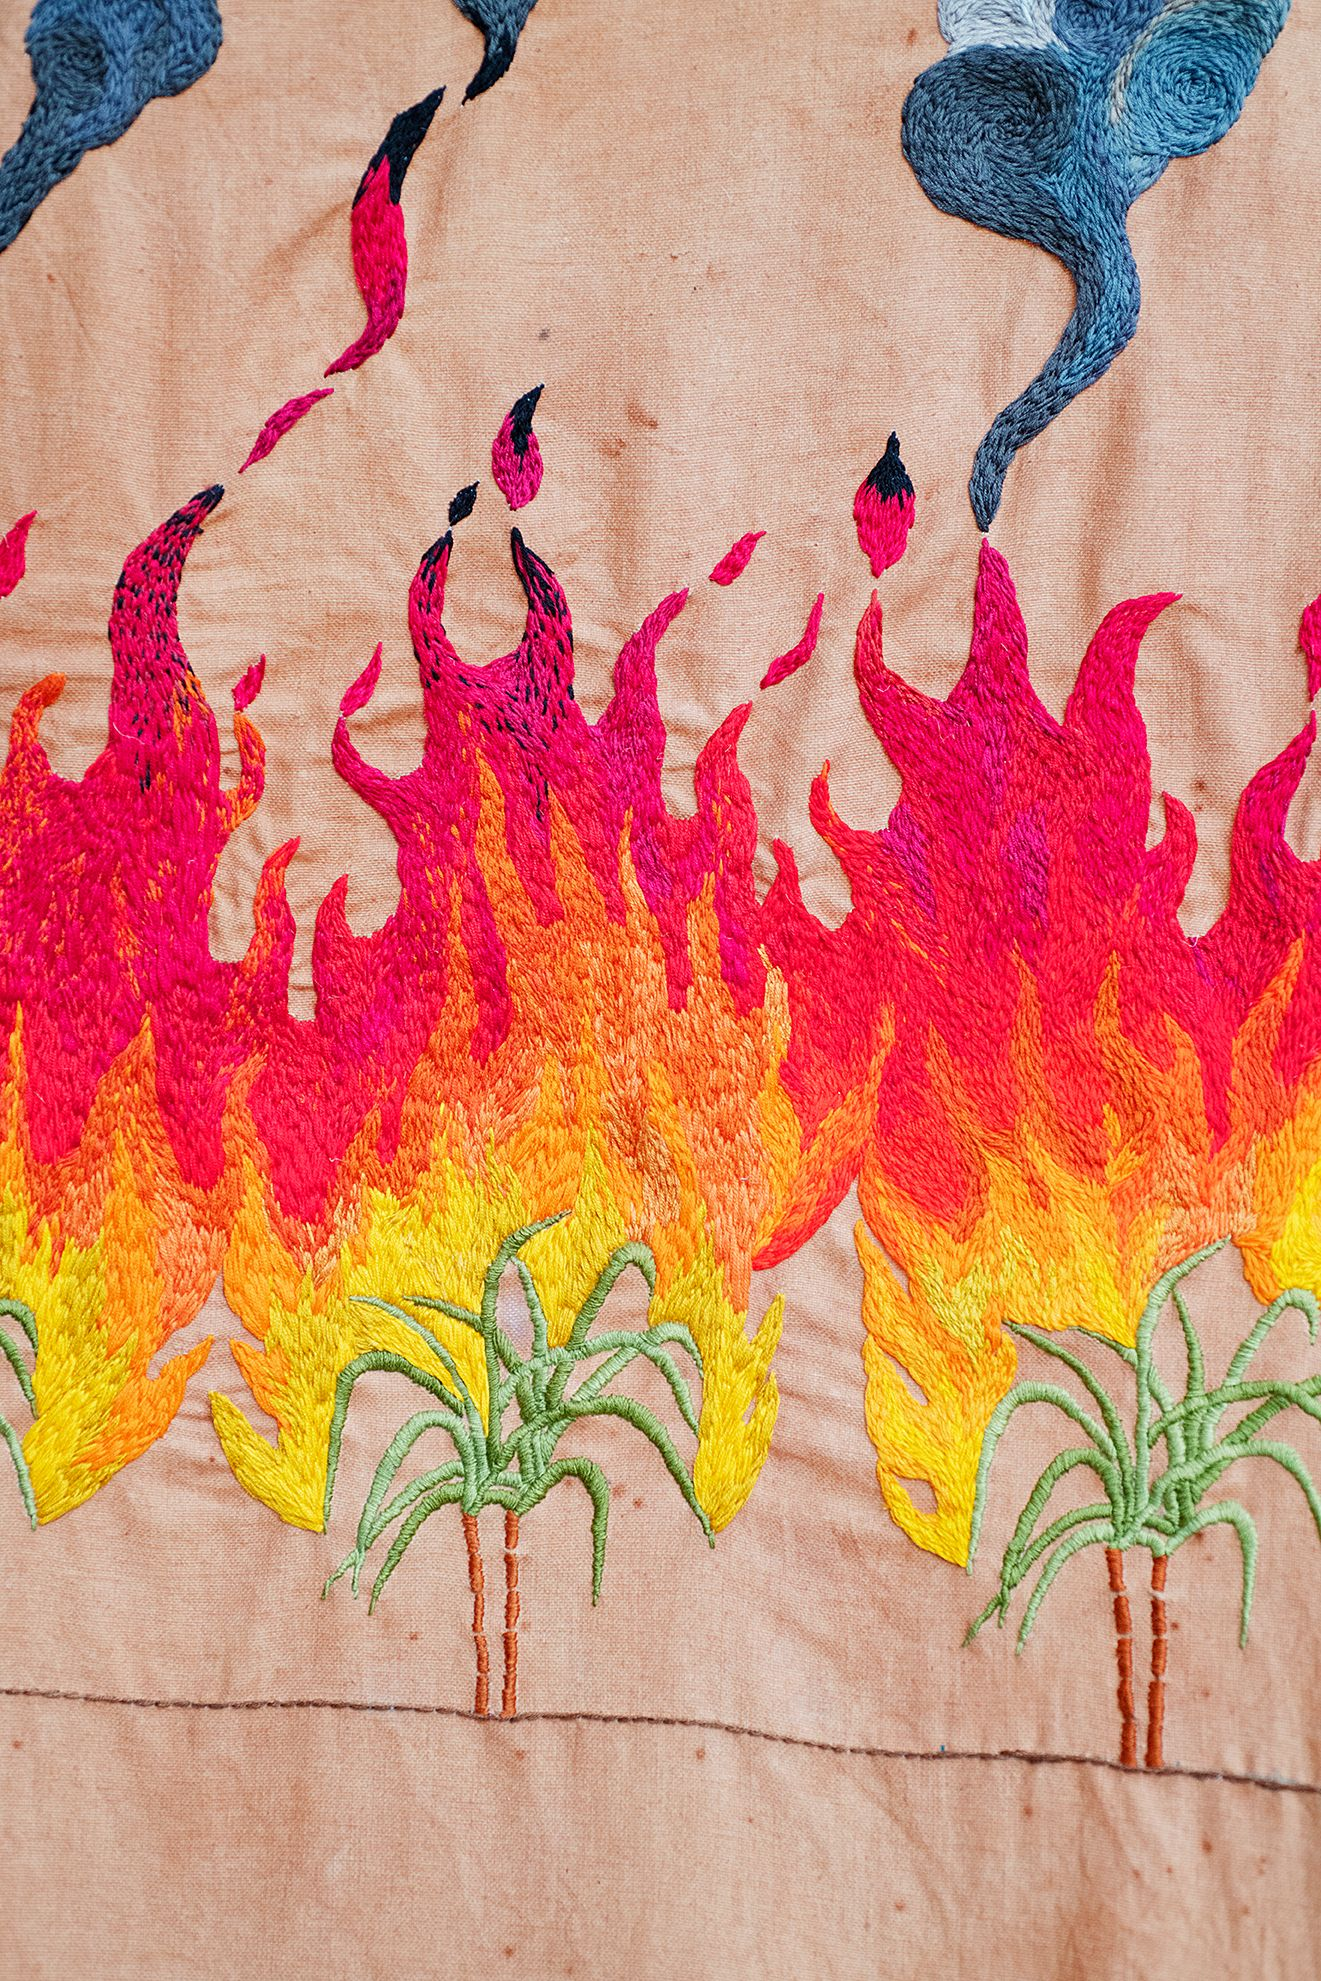 Quishile Charan, Burning Ganna Khet, 2021, cotton, embroidery thread, hessian sacks, natural dye: avocados, 153cm by 152cm. Close up of embroidery. Image taken by: Raymond Sagapolutele.